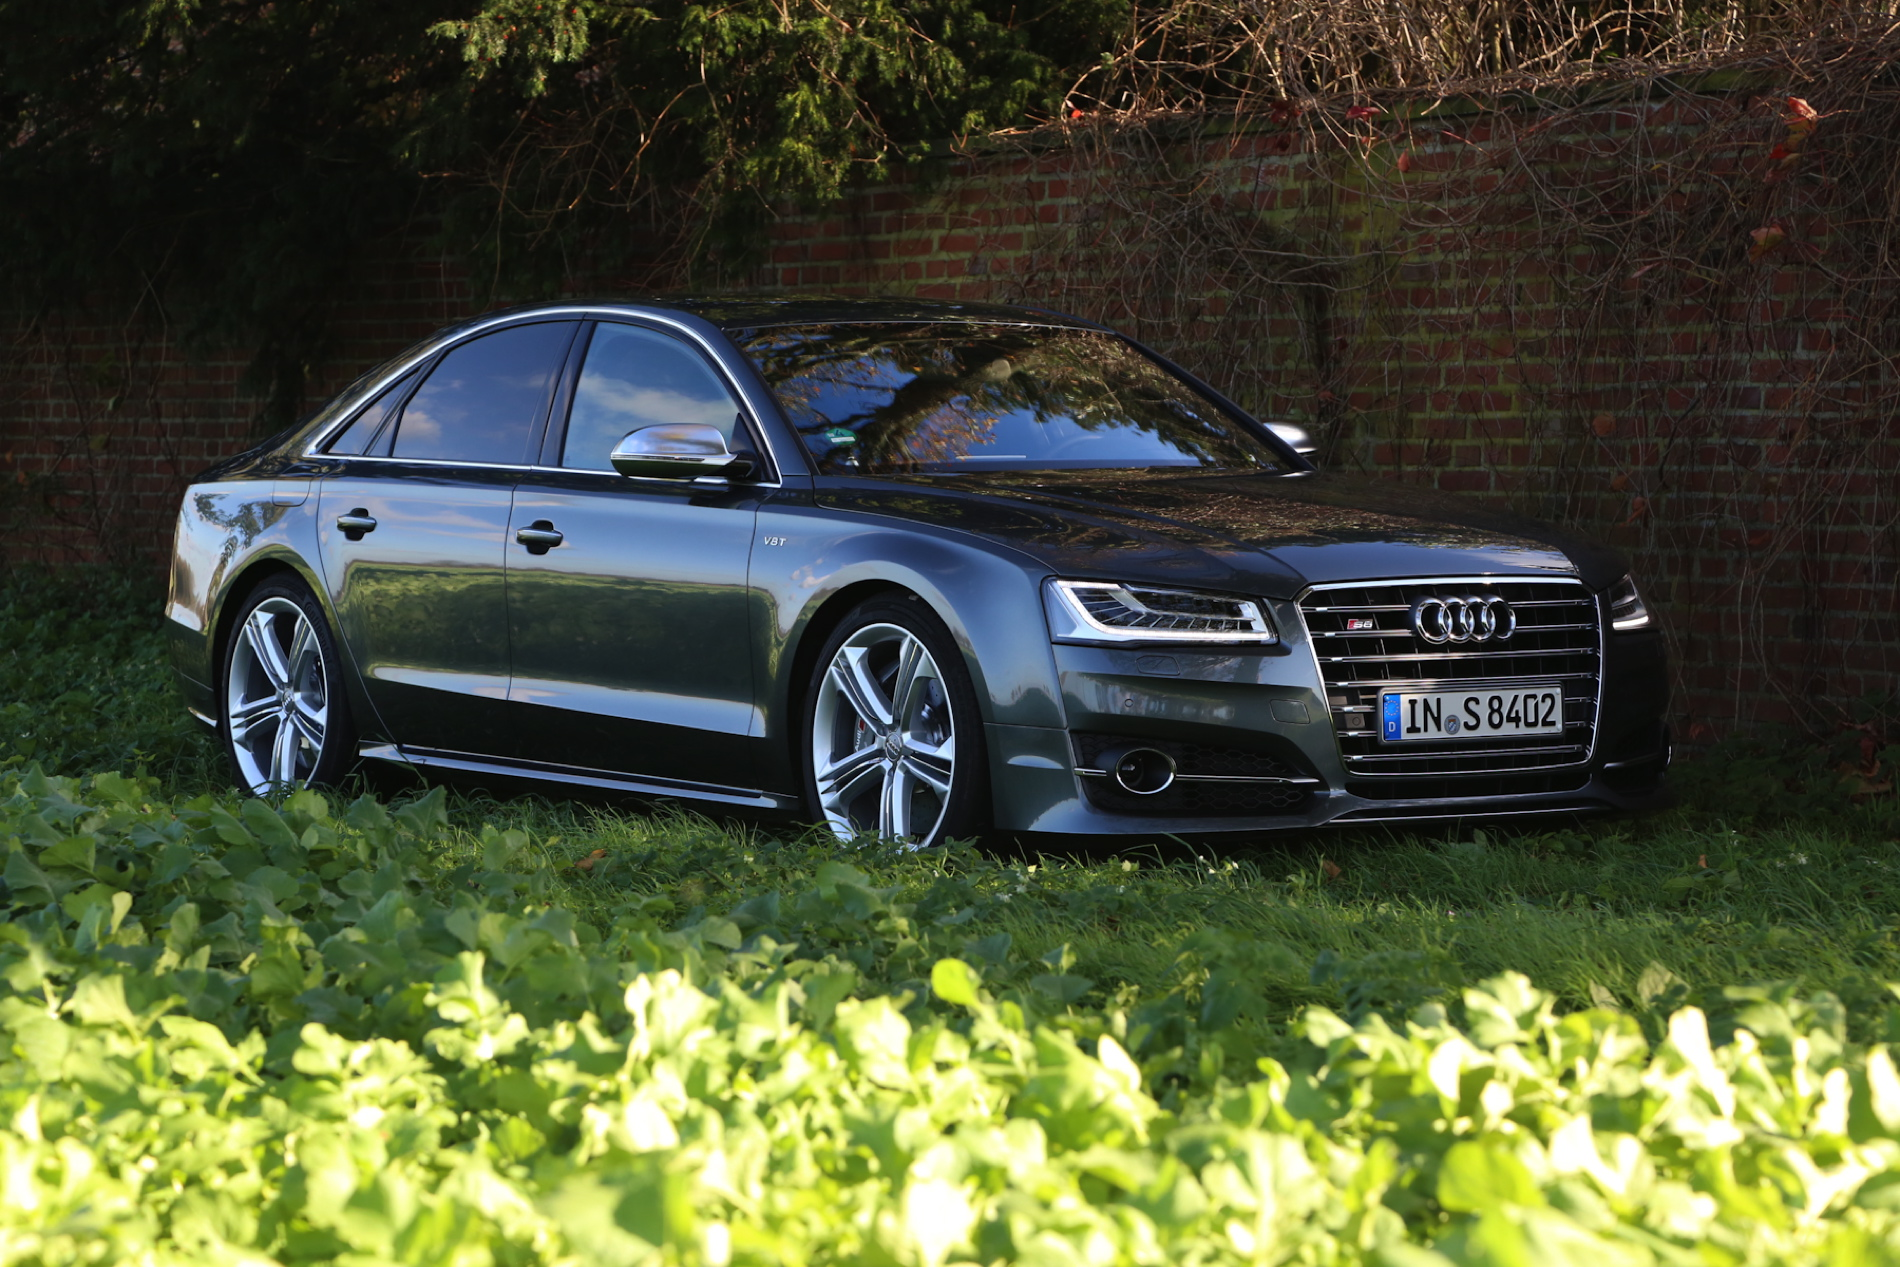 2015 Audi S8 Test Drive And Review The Stately Autobahn